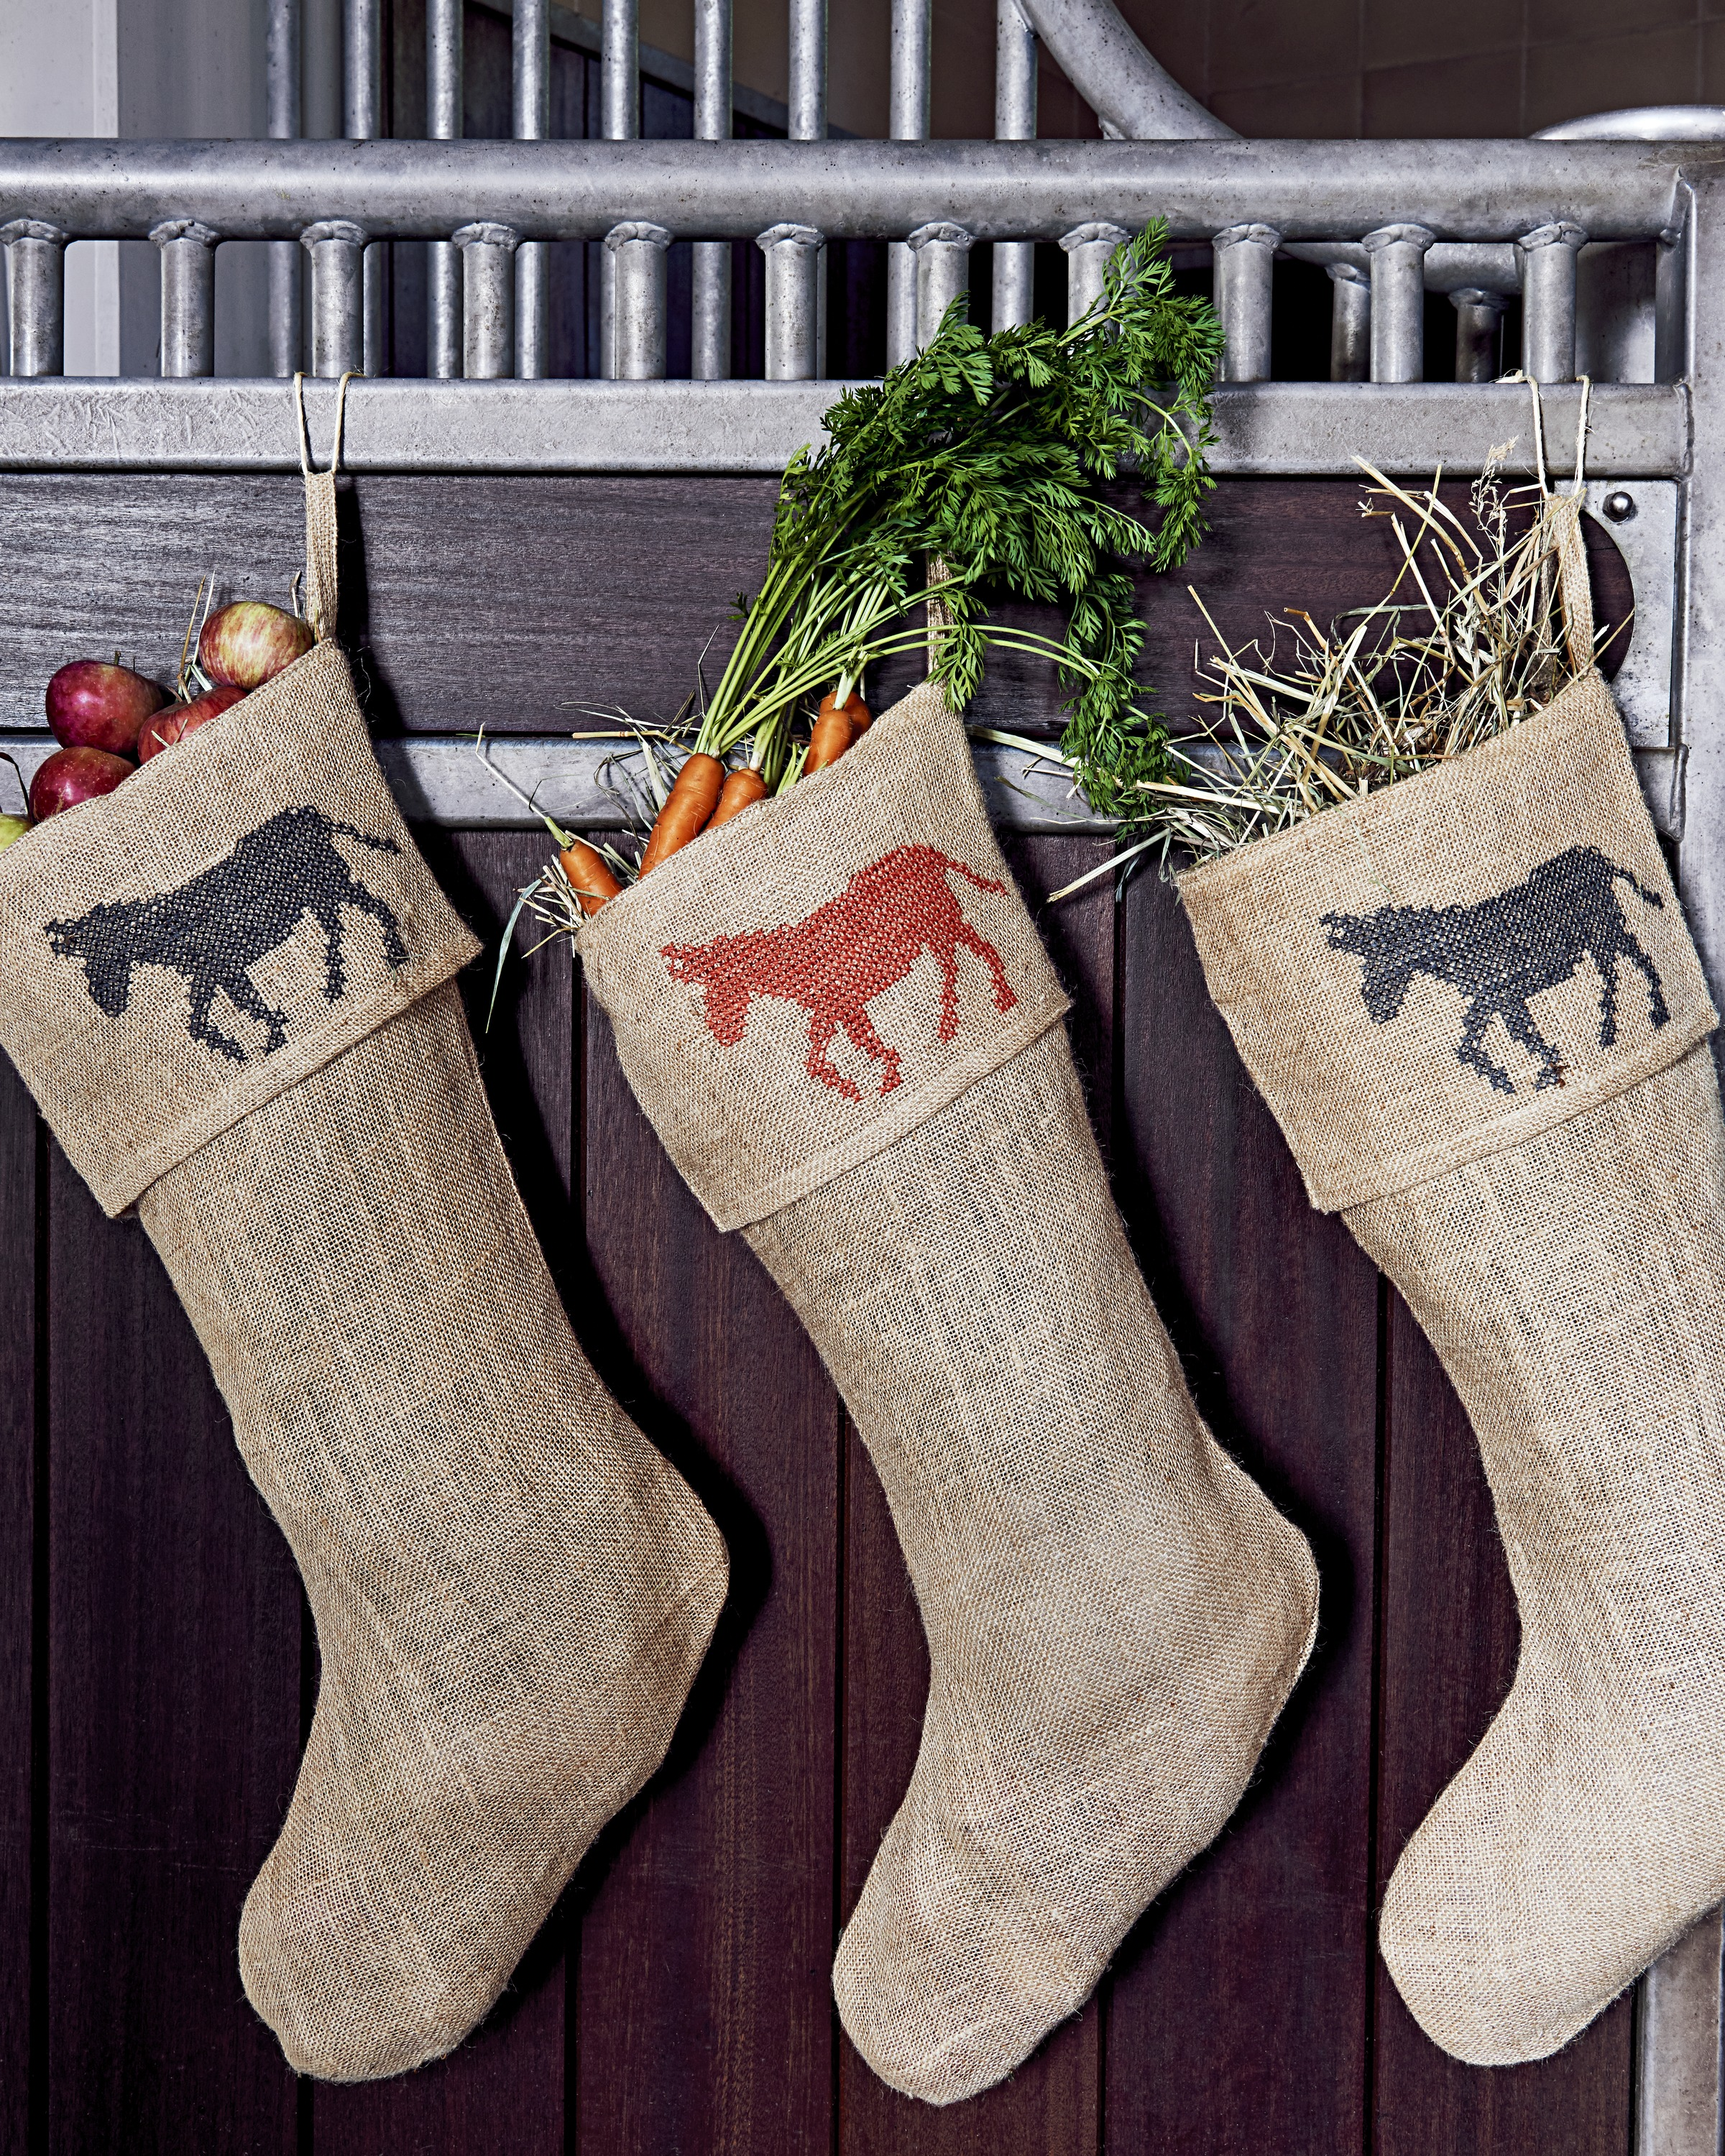 jute stockings filled with hay vegetables fruit